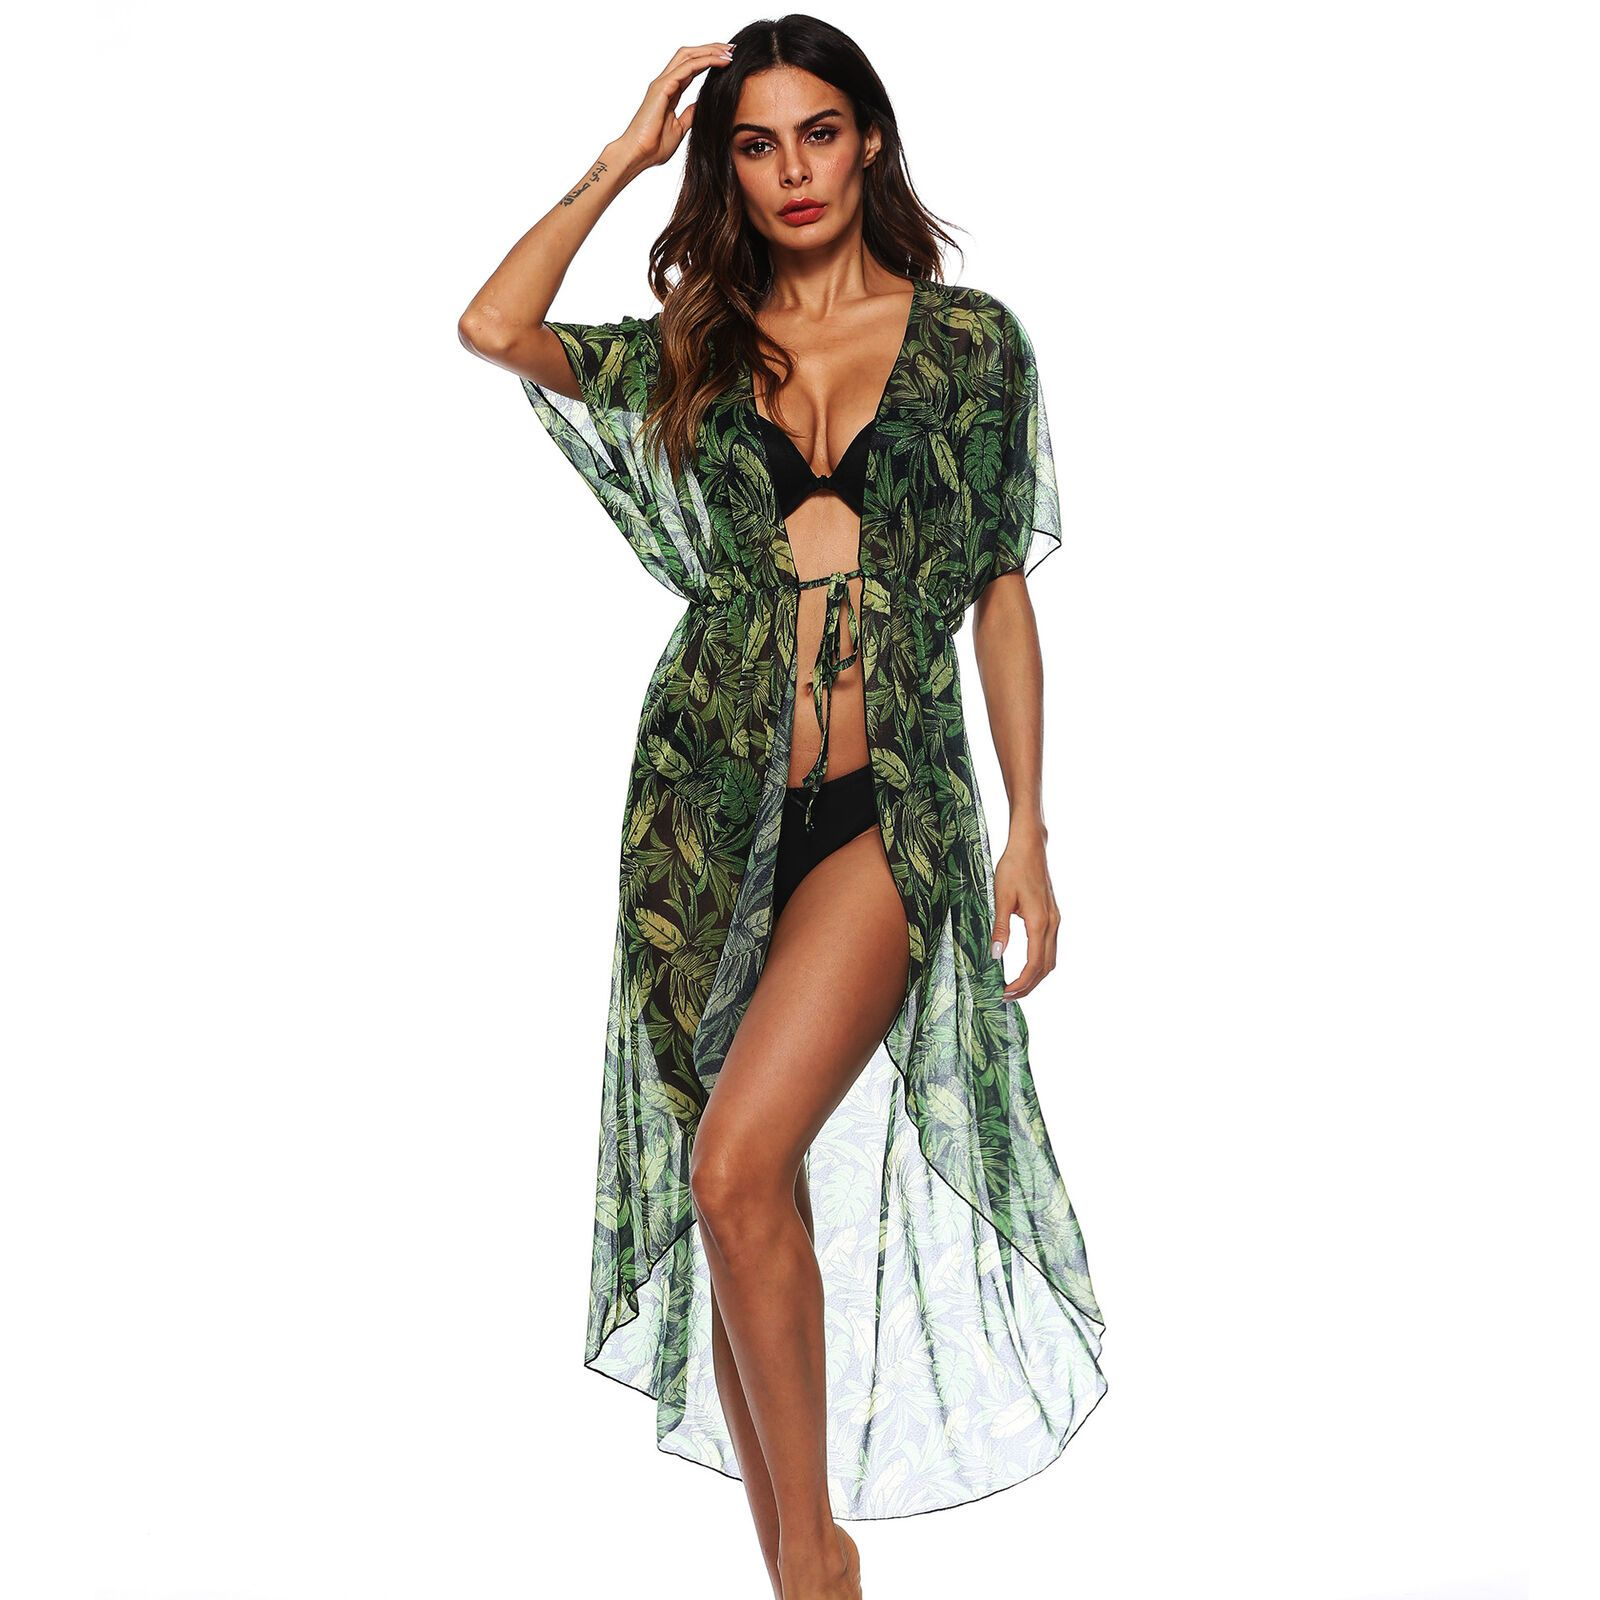 2019 New Bikini Cover Up Chiffon Green Banana Leaf Print Beach Shirt Sexy Sunscreen Cardigan Holiday Skirt Cover Up 7